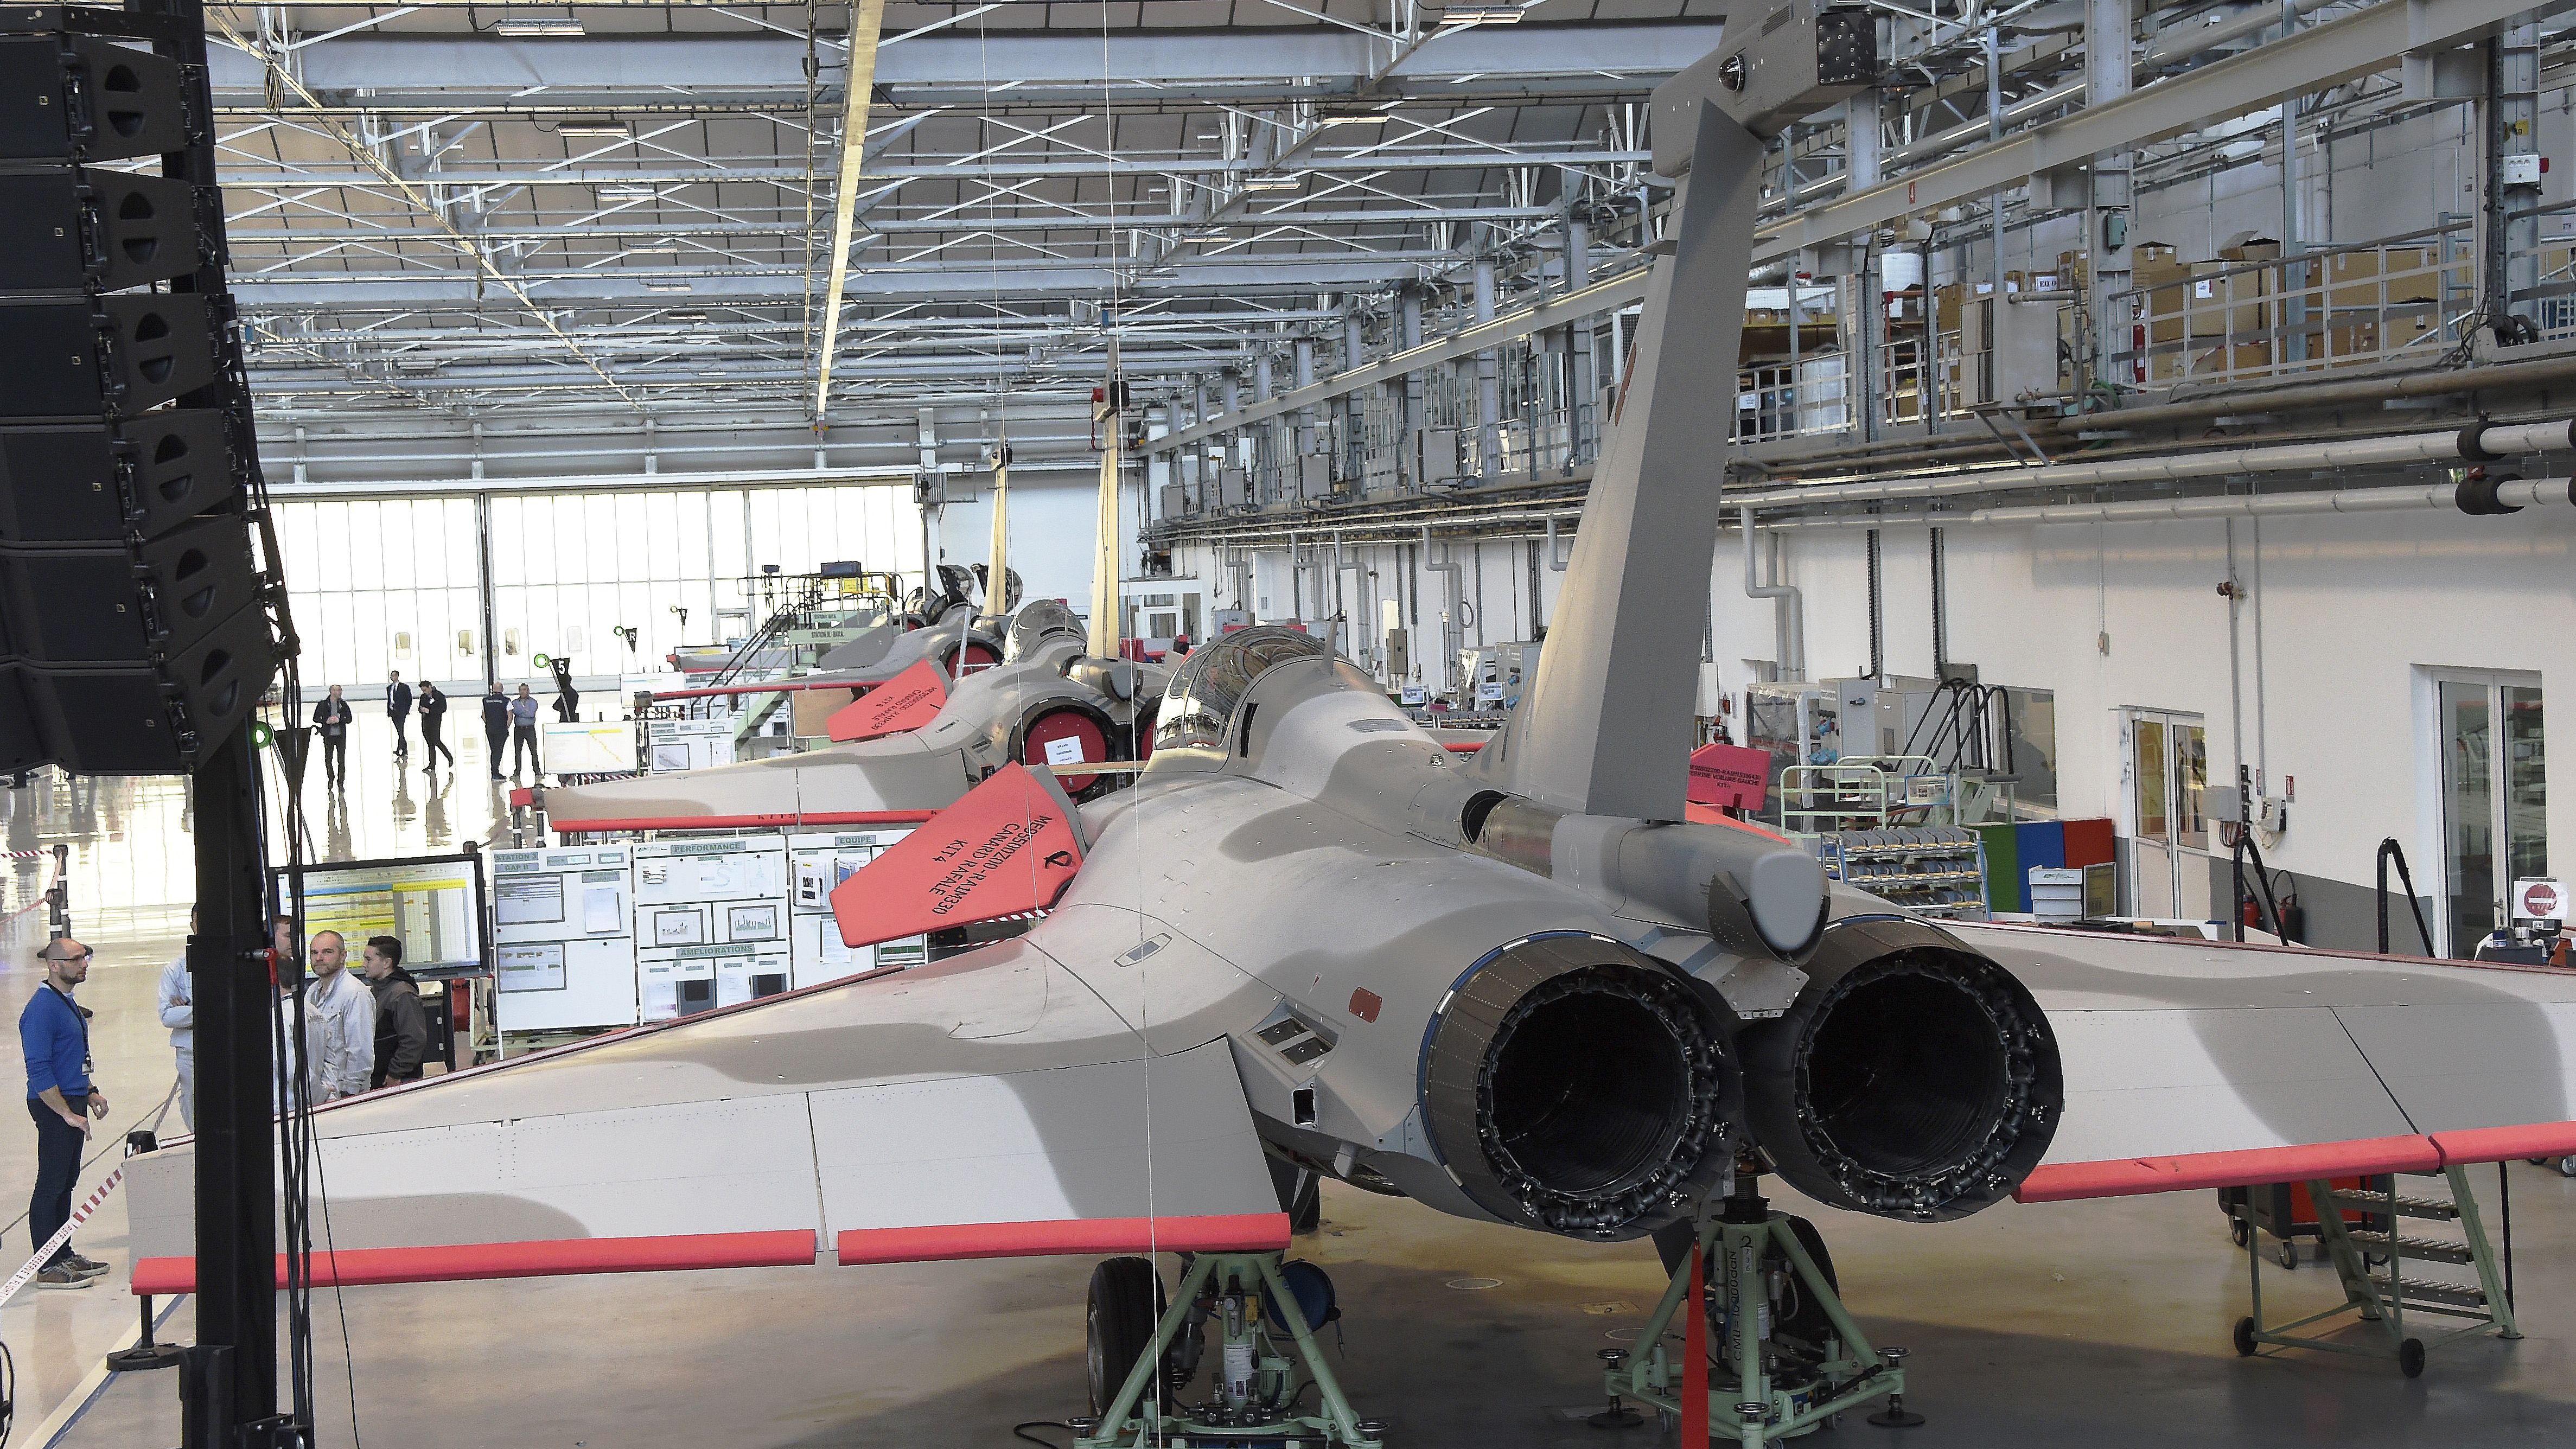 Dassault Aviation's Rafale fighter jets sit on an assembly line in Merignac, southwestern France, on January 14, 2019. - French Defence Minister, Florence Parly, launched on January 14, 2019 a 1,9-billion-euro-program for the new F4 standard of the Dassault Rafale combat aircraft. (MEHDI FEDOUACH/AFP/Getty Images)